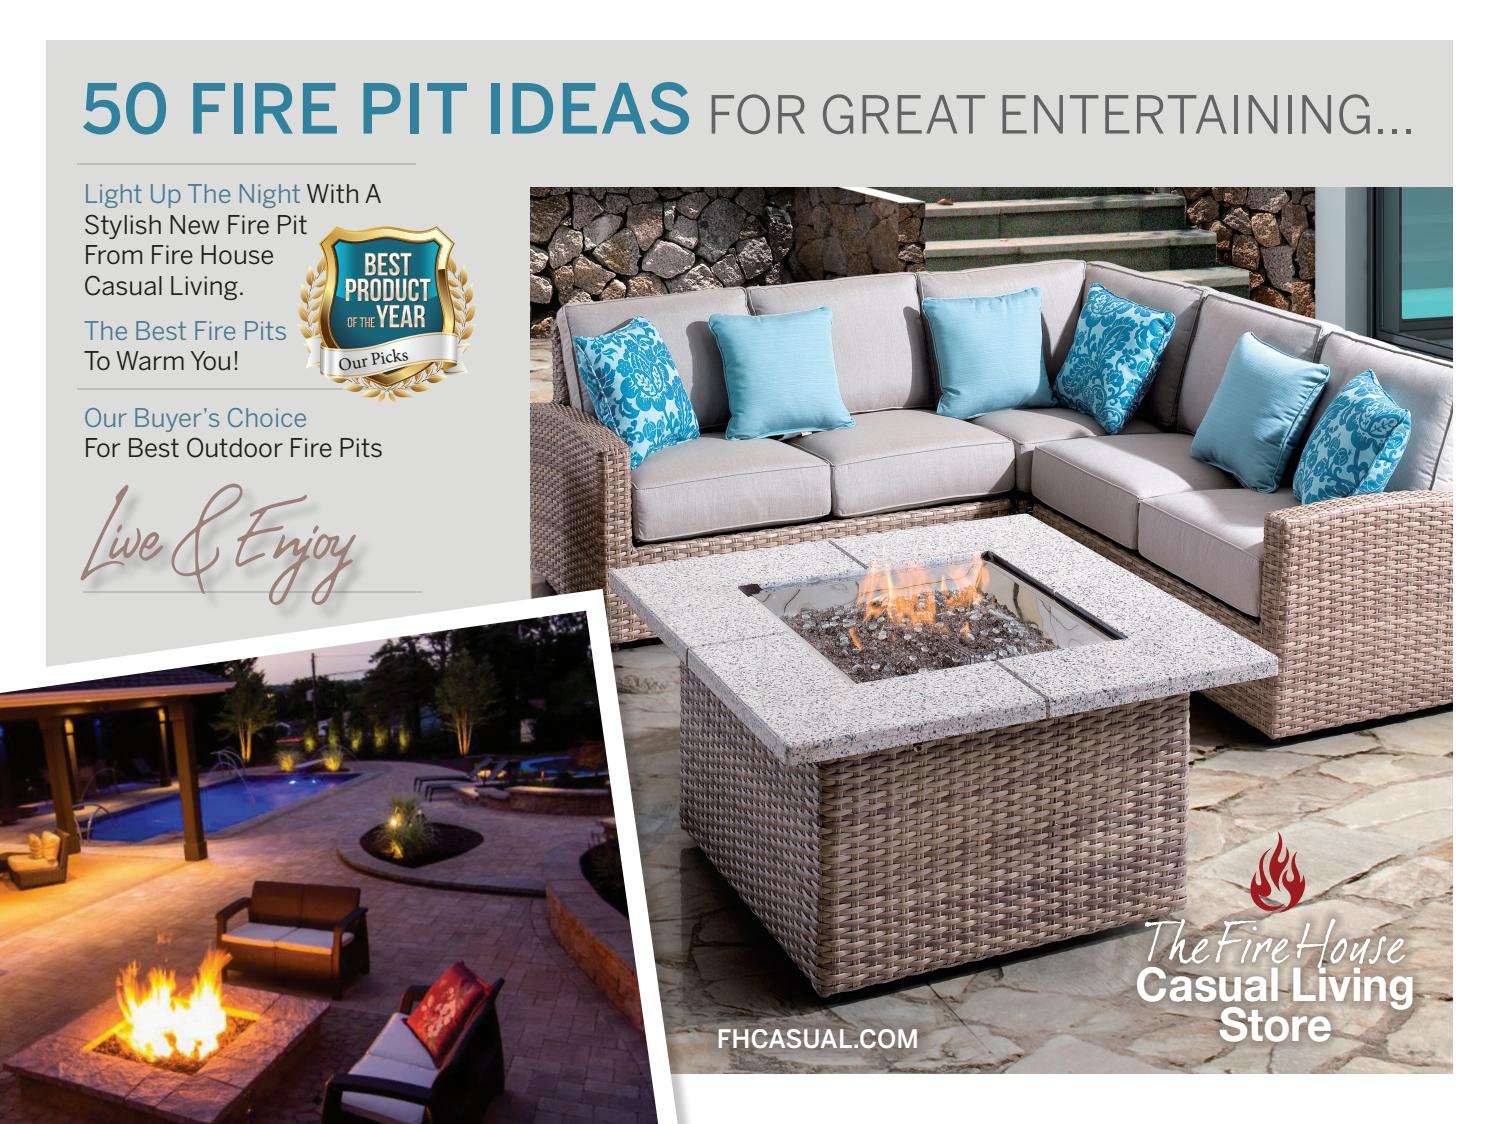 Fire House Casual Living Store 50 Best Ideas For Fire Pits By Digital Media  And Publishing   Issuu